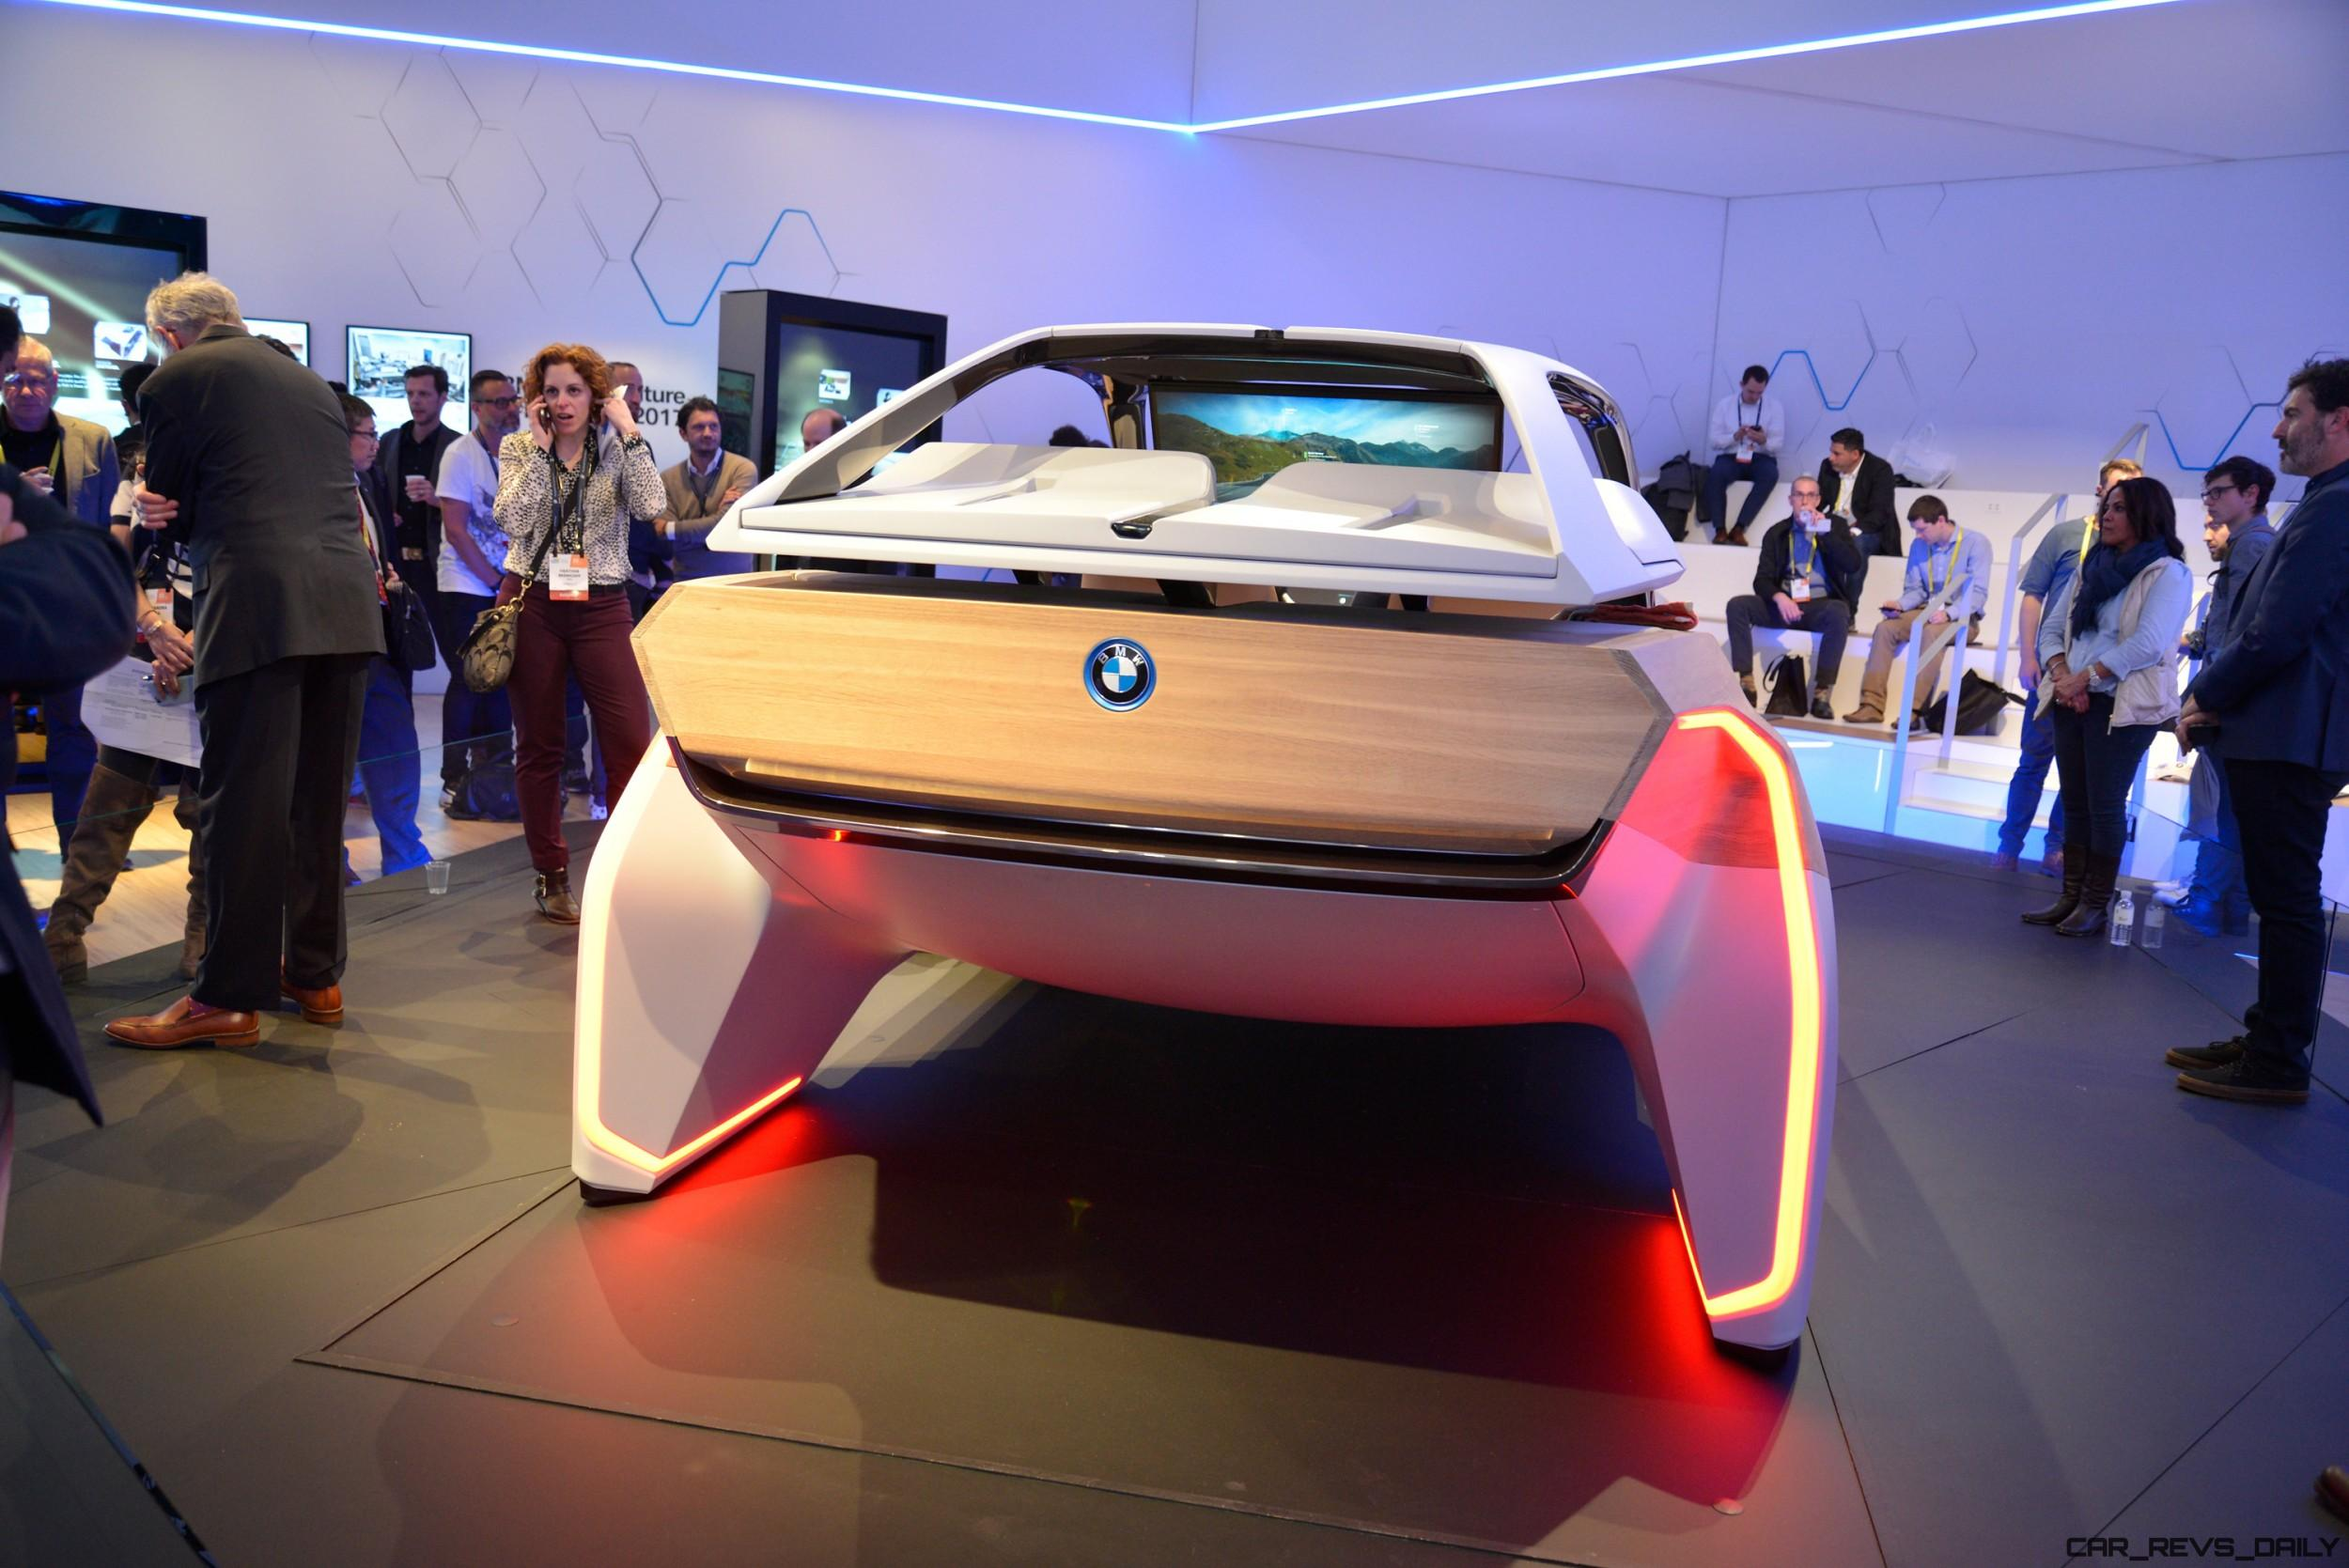 2017 Bmw I Inside Future Sculpture Previews Holoactive Gesture